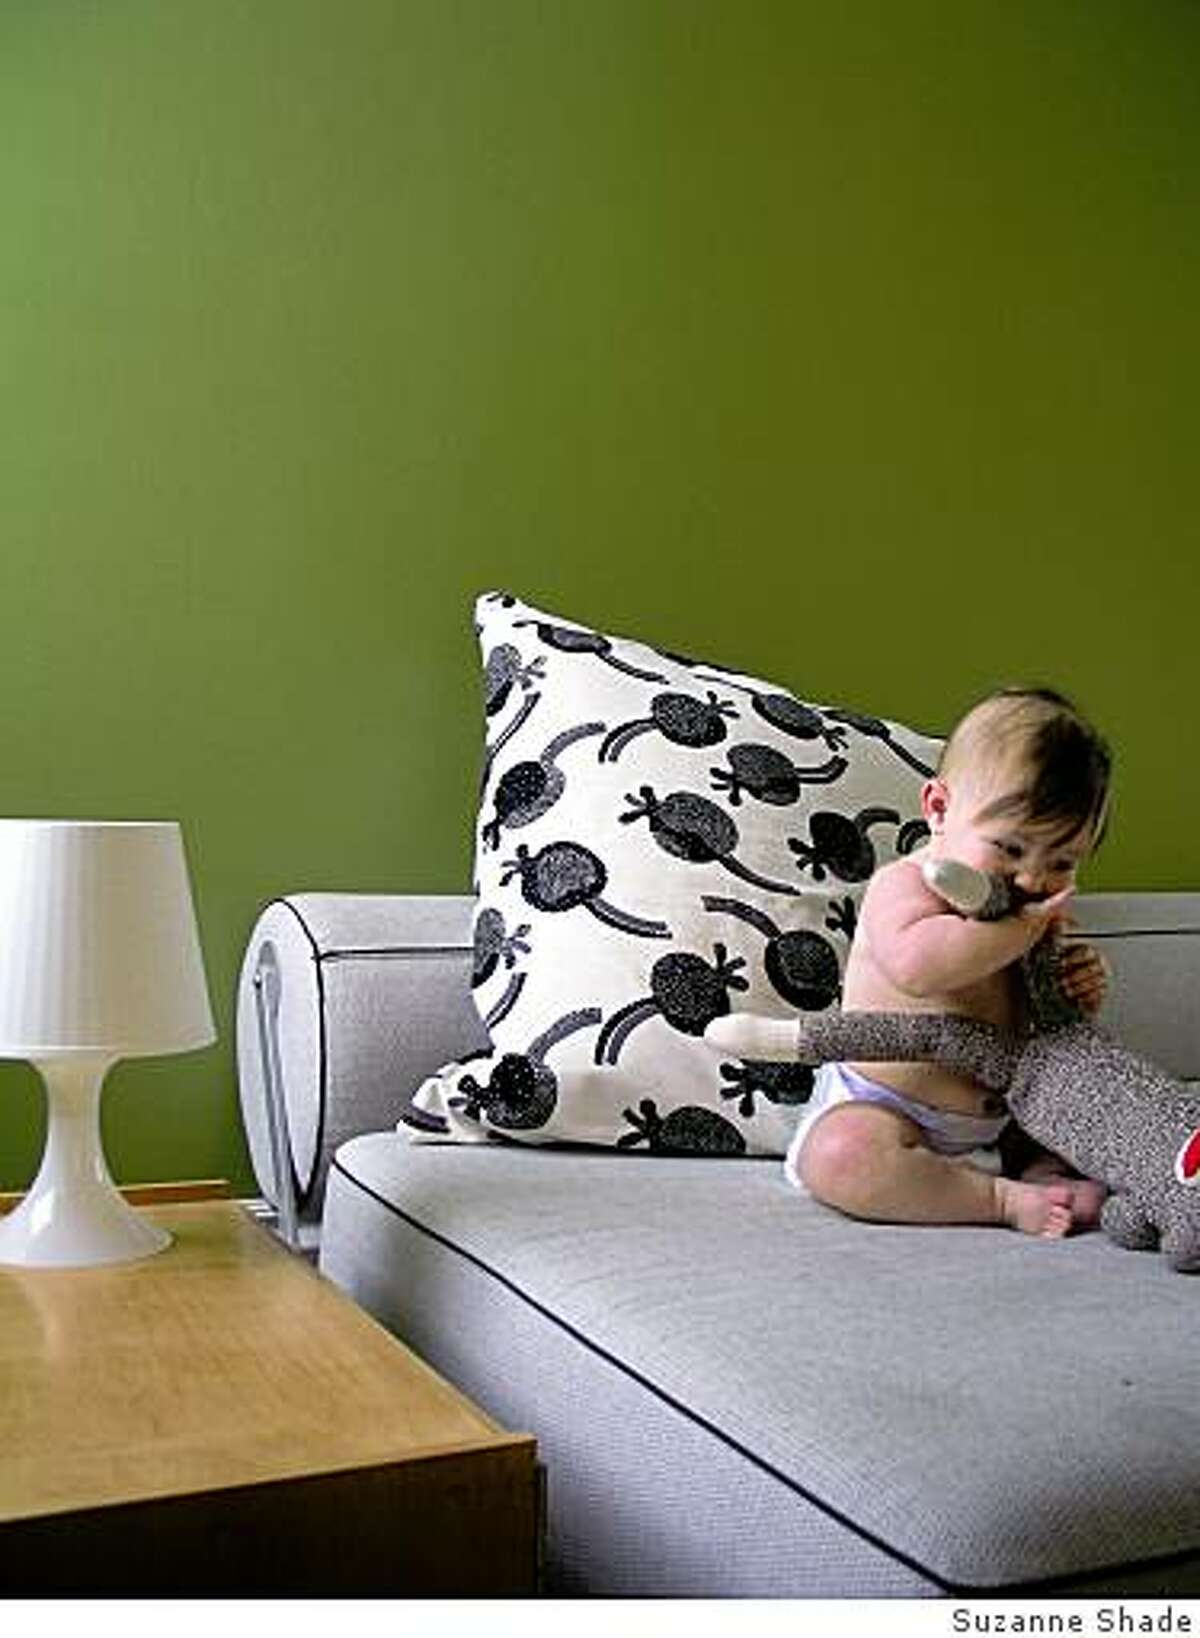 One of stylemaker Suzanne Shade's favorites things:Twilight sleeper sofa: This is obviously great for guests, but we just recently had a baby and it?s been an indispensable piece. We use it as a family bed in the nursery, and the central spot to read stories and play. It will also grow to be her bed when the time comes. Hooray for multi uses! (dwr.com)OLYMPUS DIGITAL CAMERA